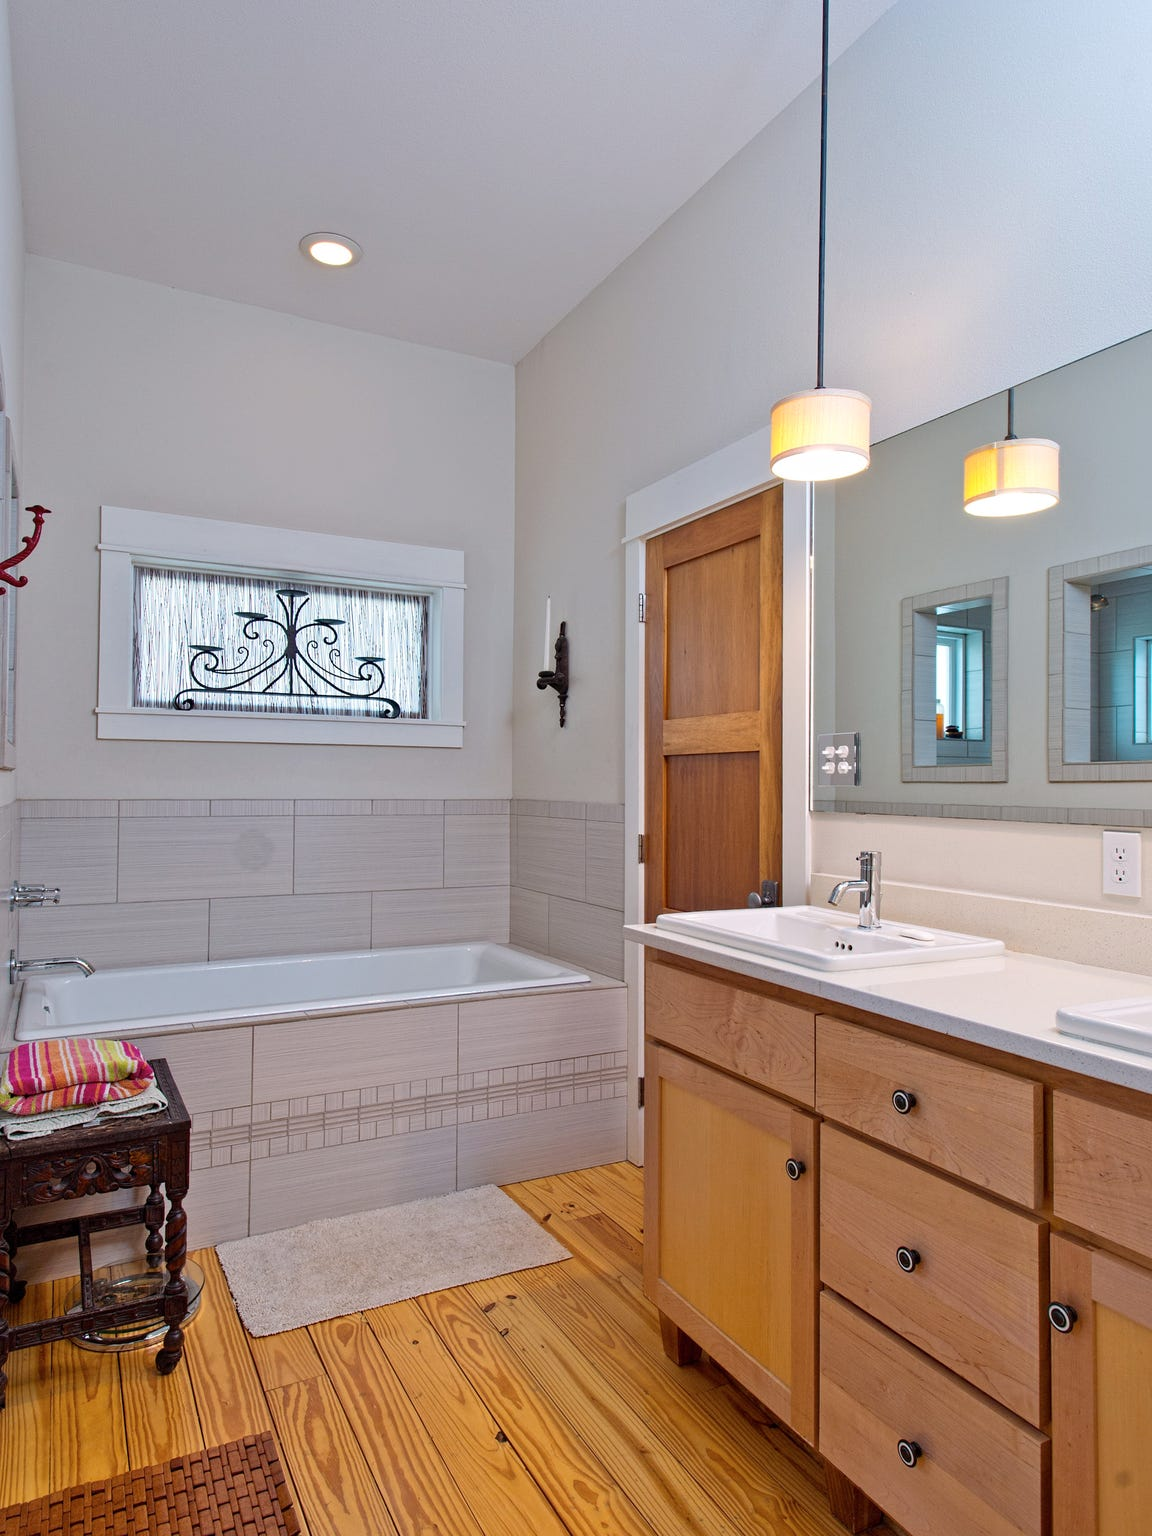 The master bath features pine plank floors, double vanities, a nice soaking tub and large walk in shower